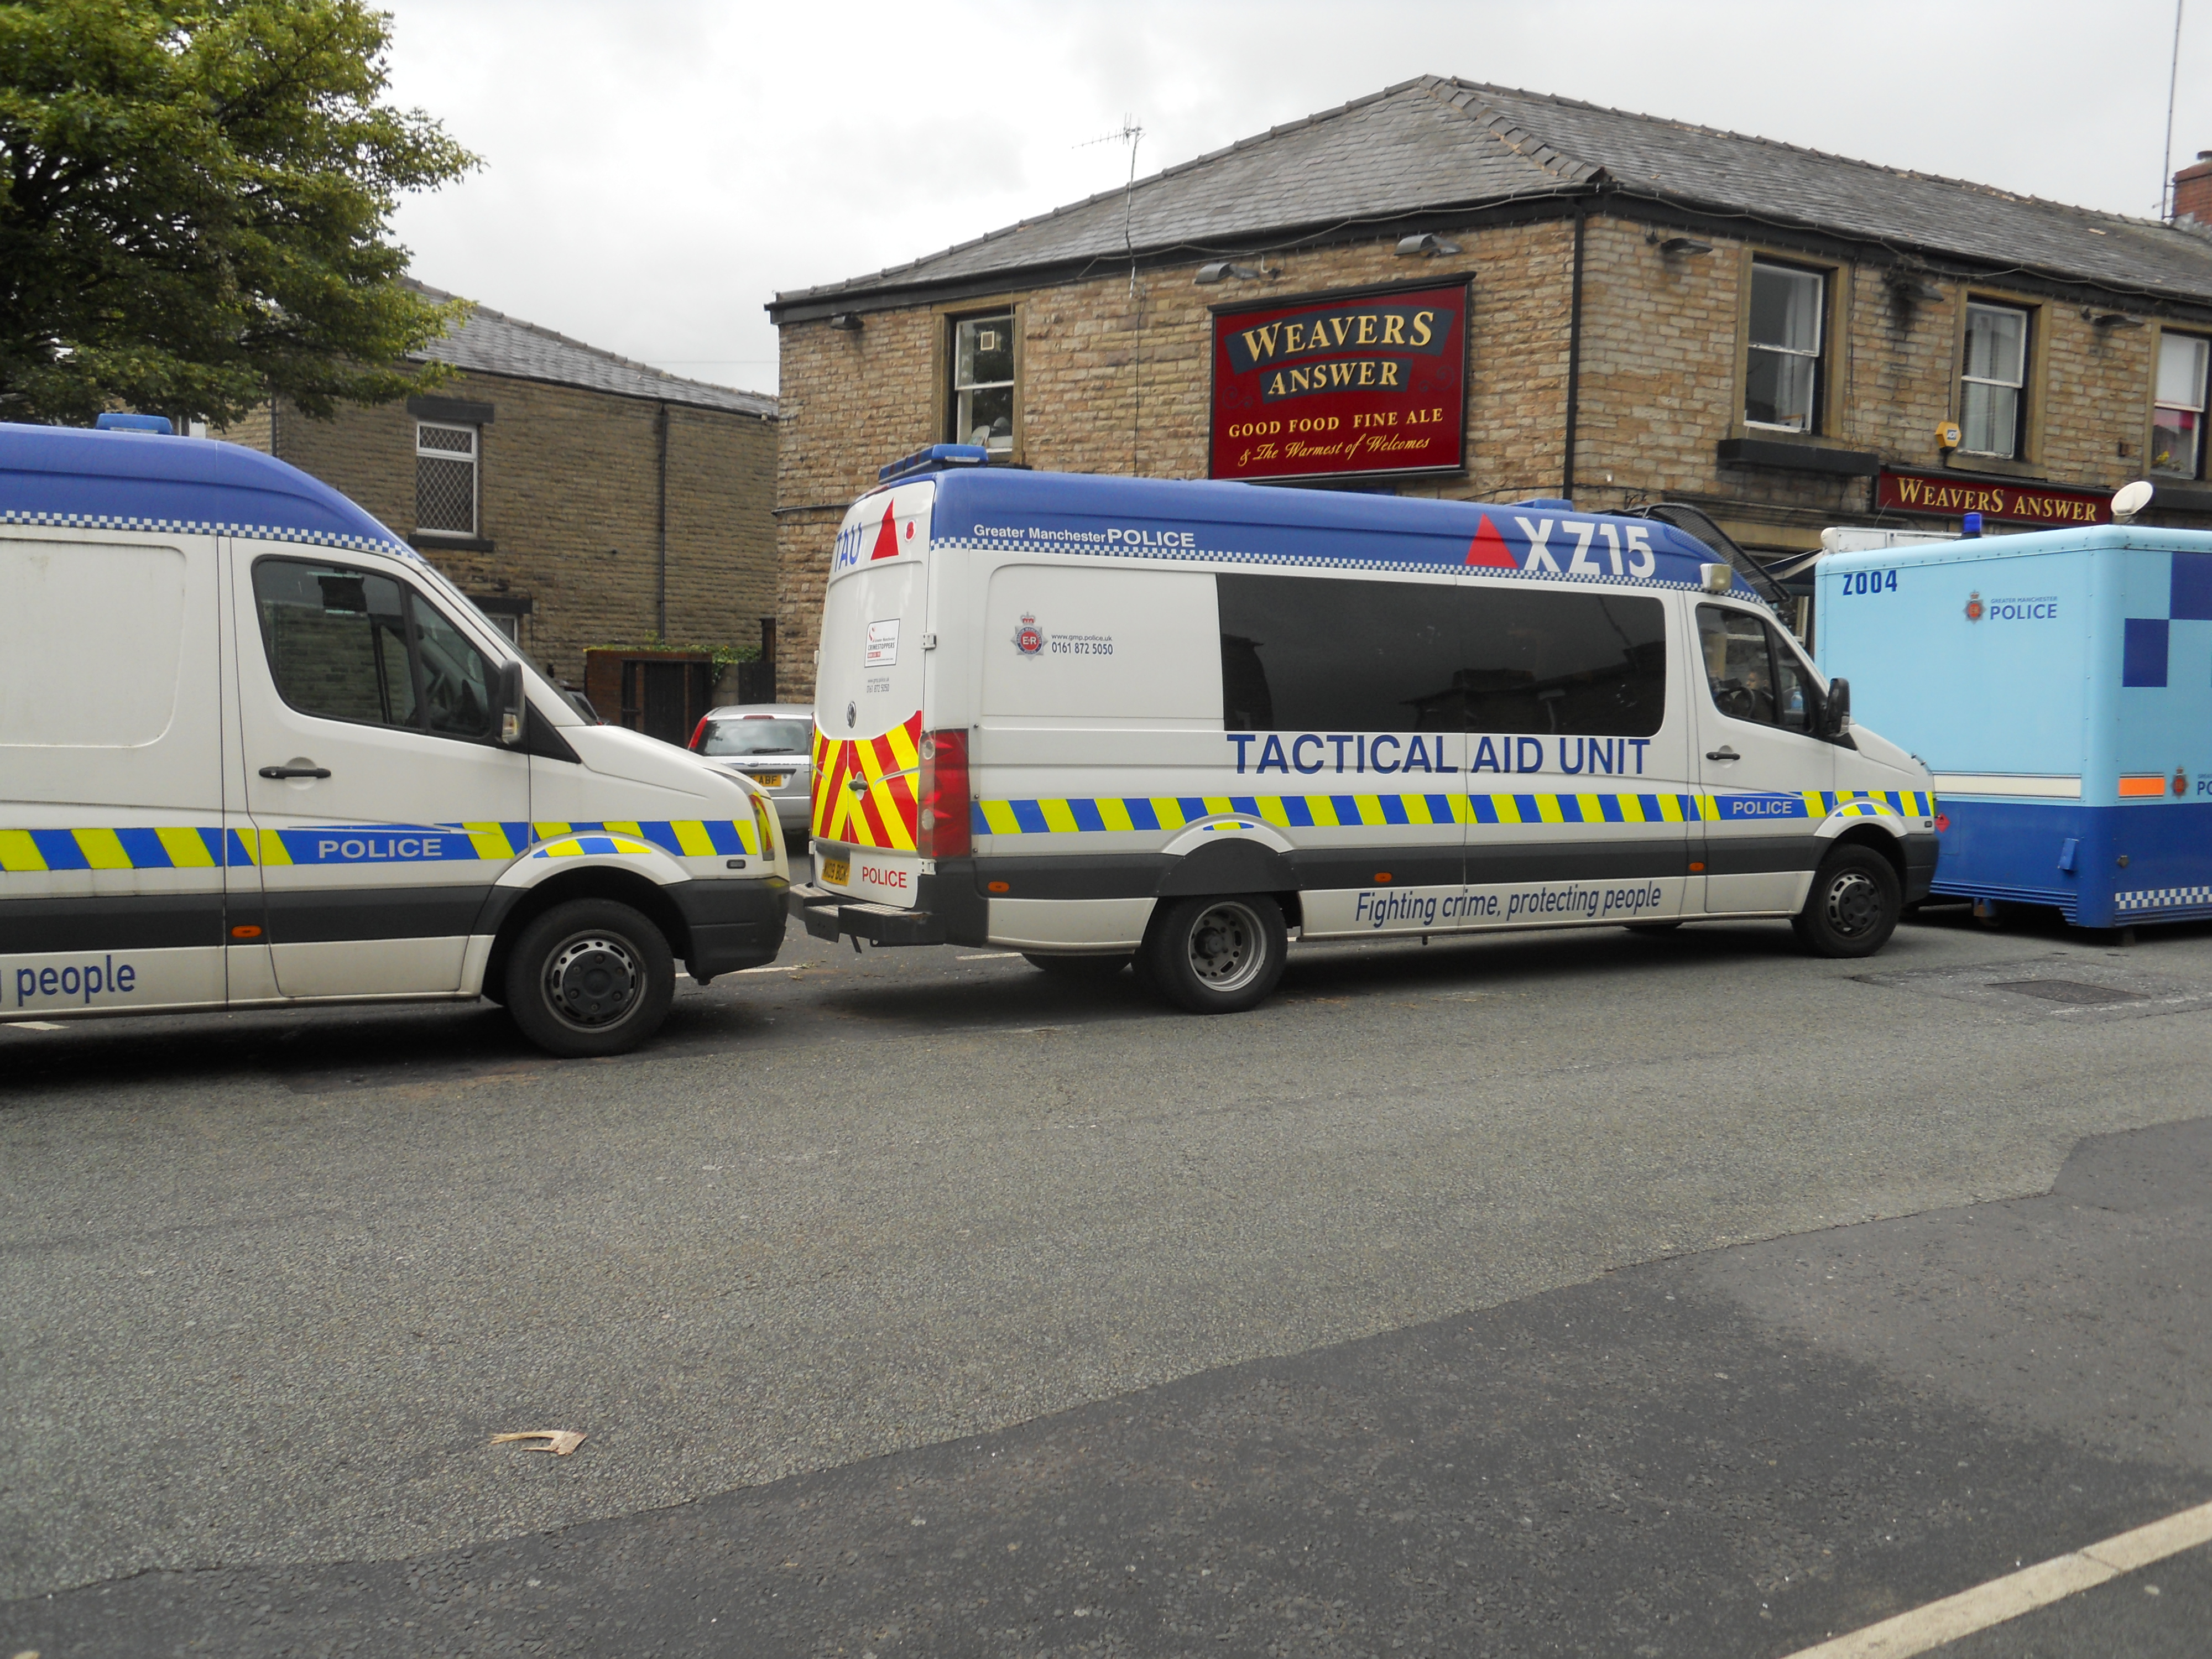 File:GMP Tactical Aid Unit Volkswagen Crafter XZ15.jpg - Wikimedia Commons